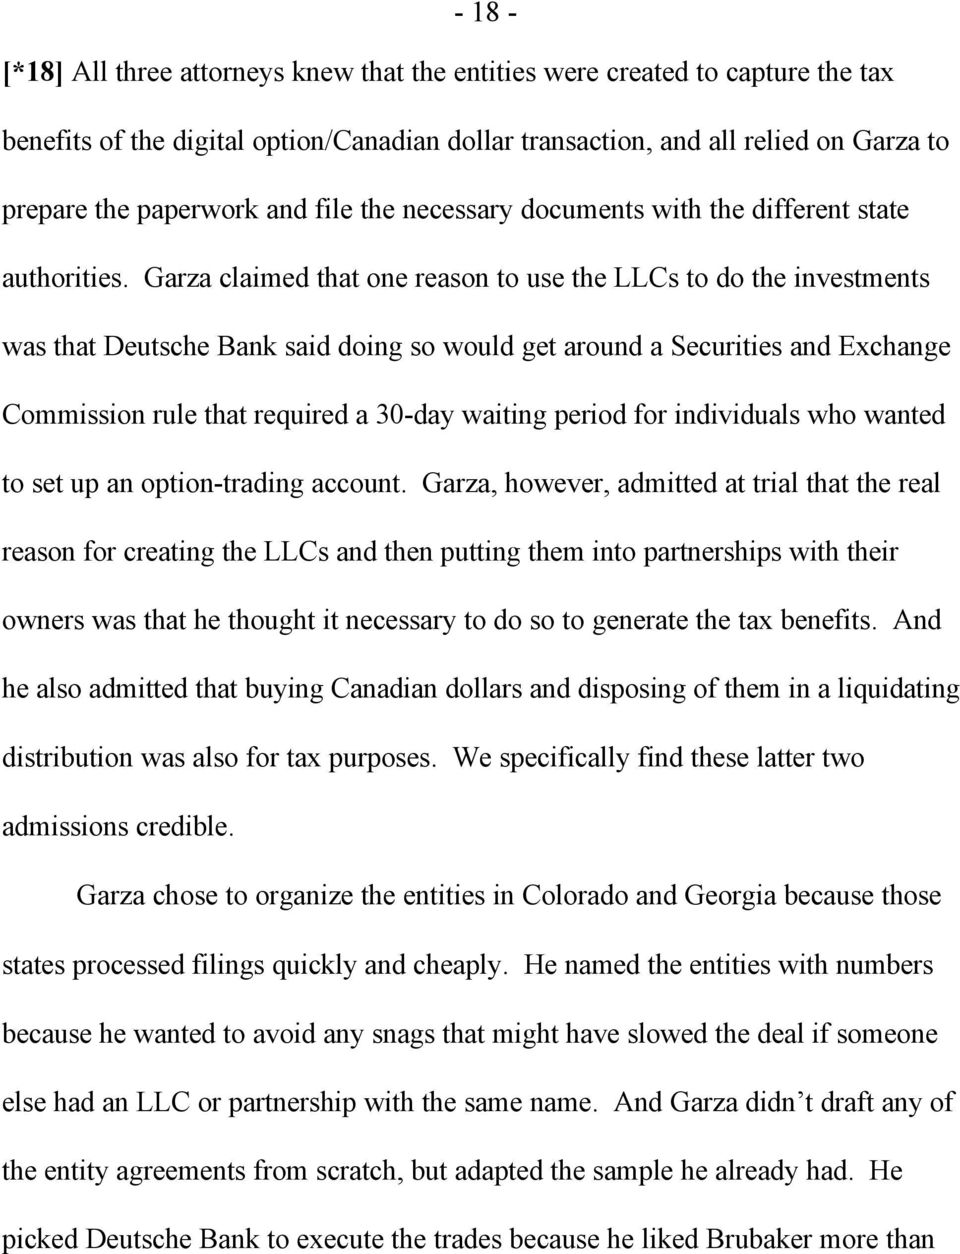 Garza claimed that one reason to use the LLCs to do the investments was that Deutsche Bank said doing so would get around a Securities and Exchange Commission rule that required a 30-day waiting